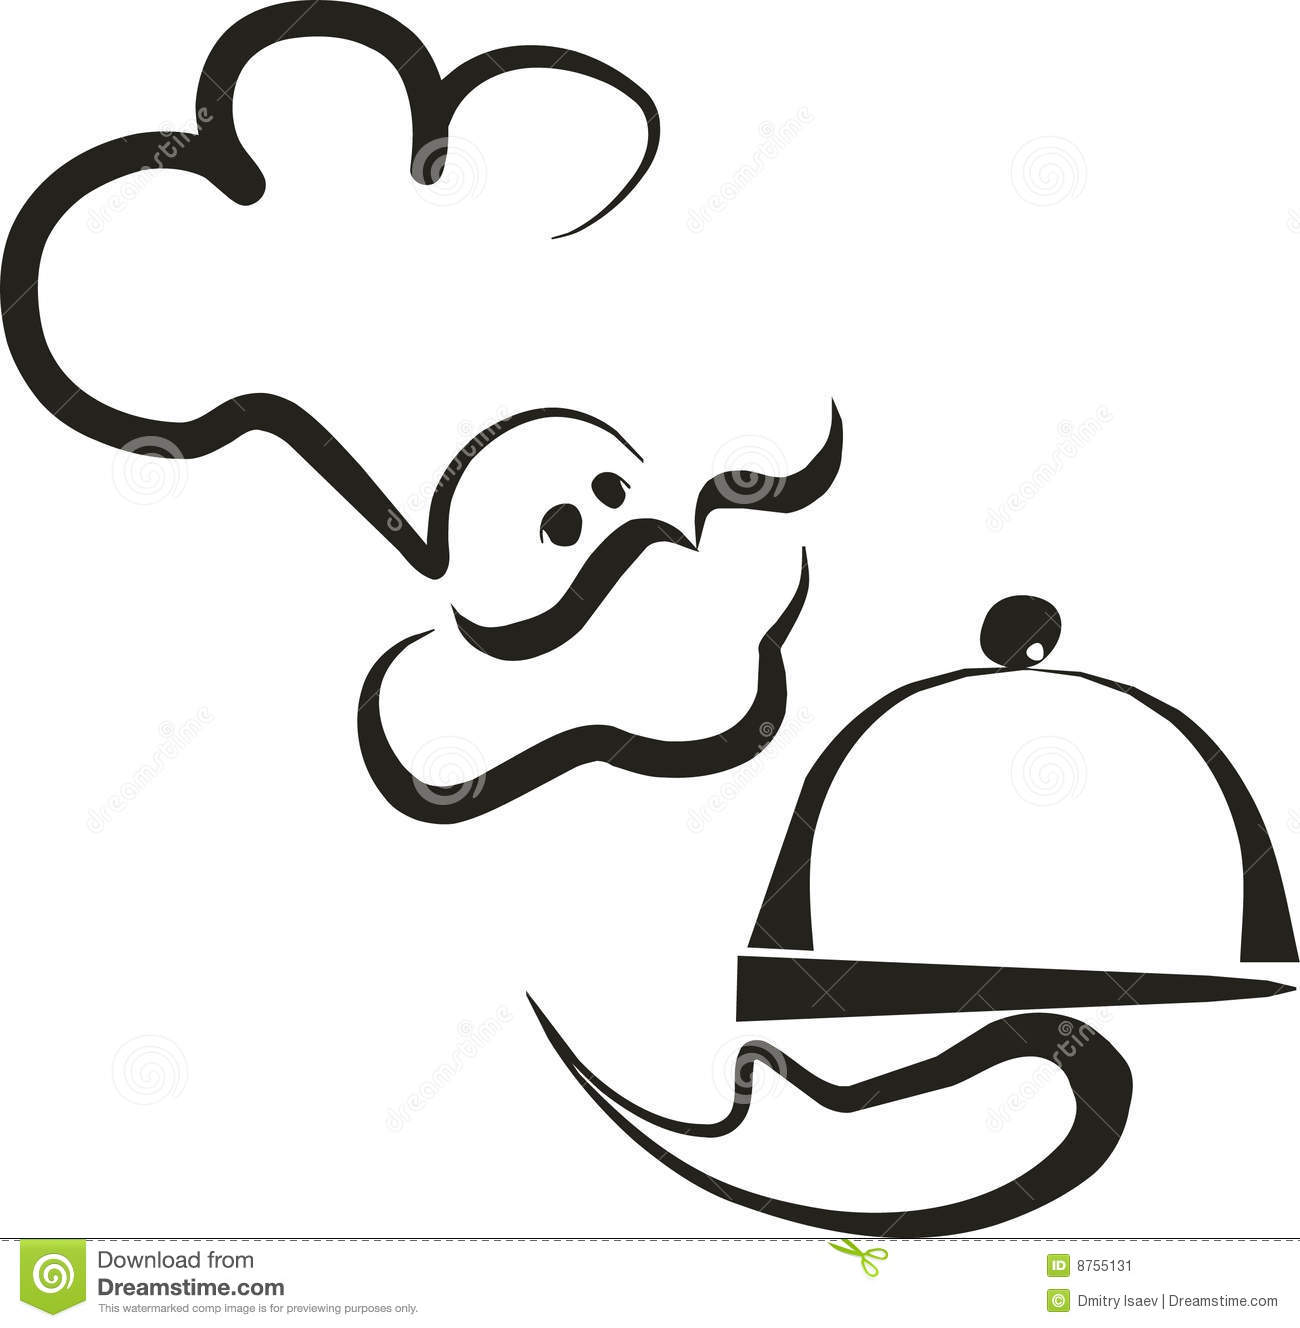 Chef silhouette 2 stock vector. Image of perfect, graphic ...